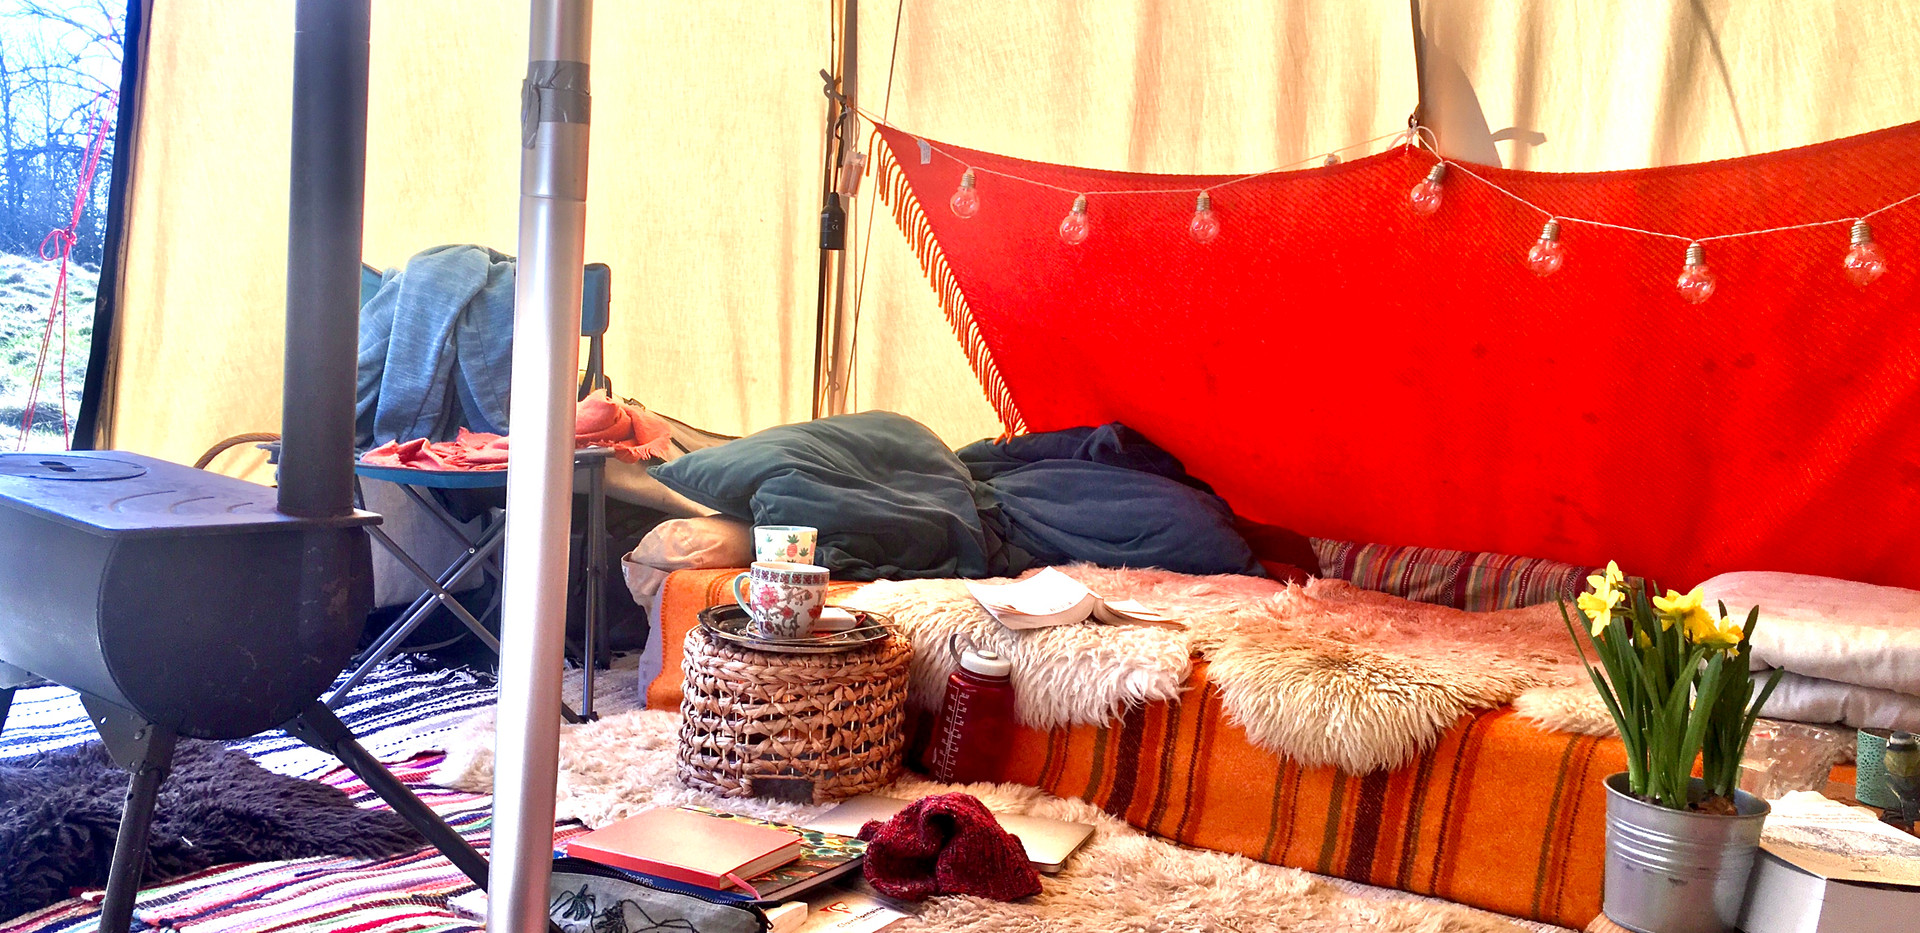 View from inside the tipi